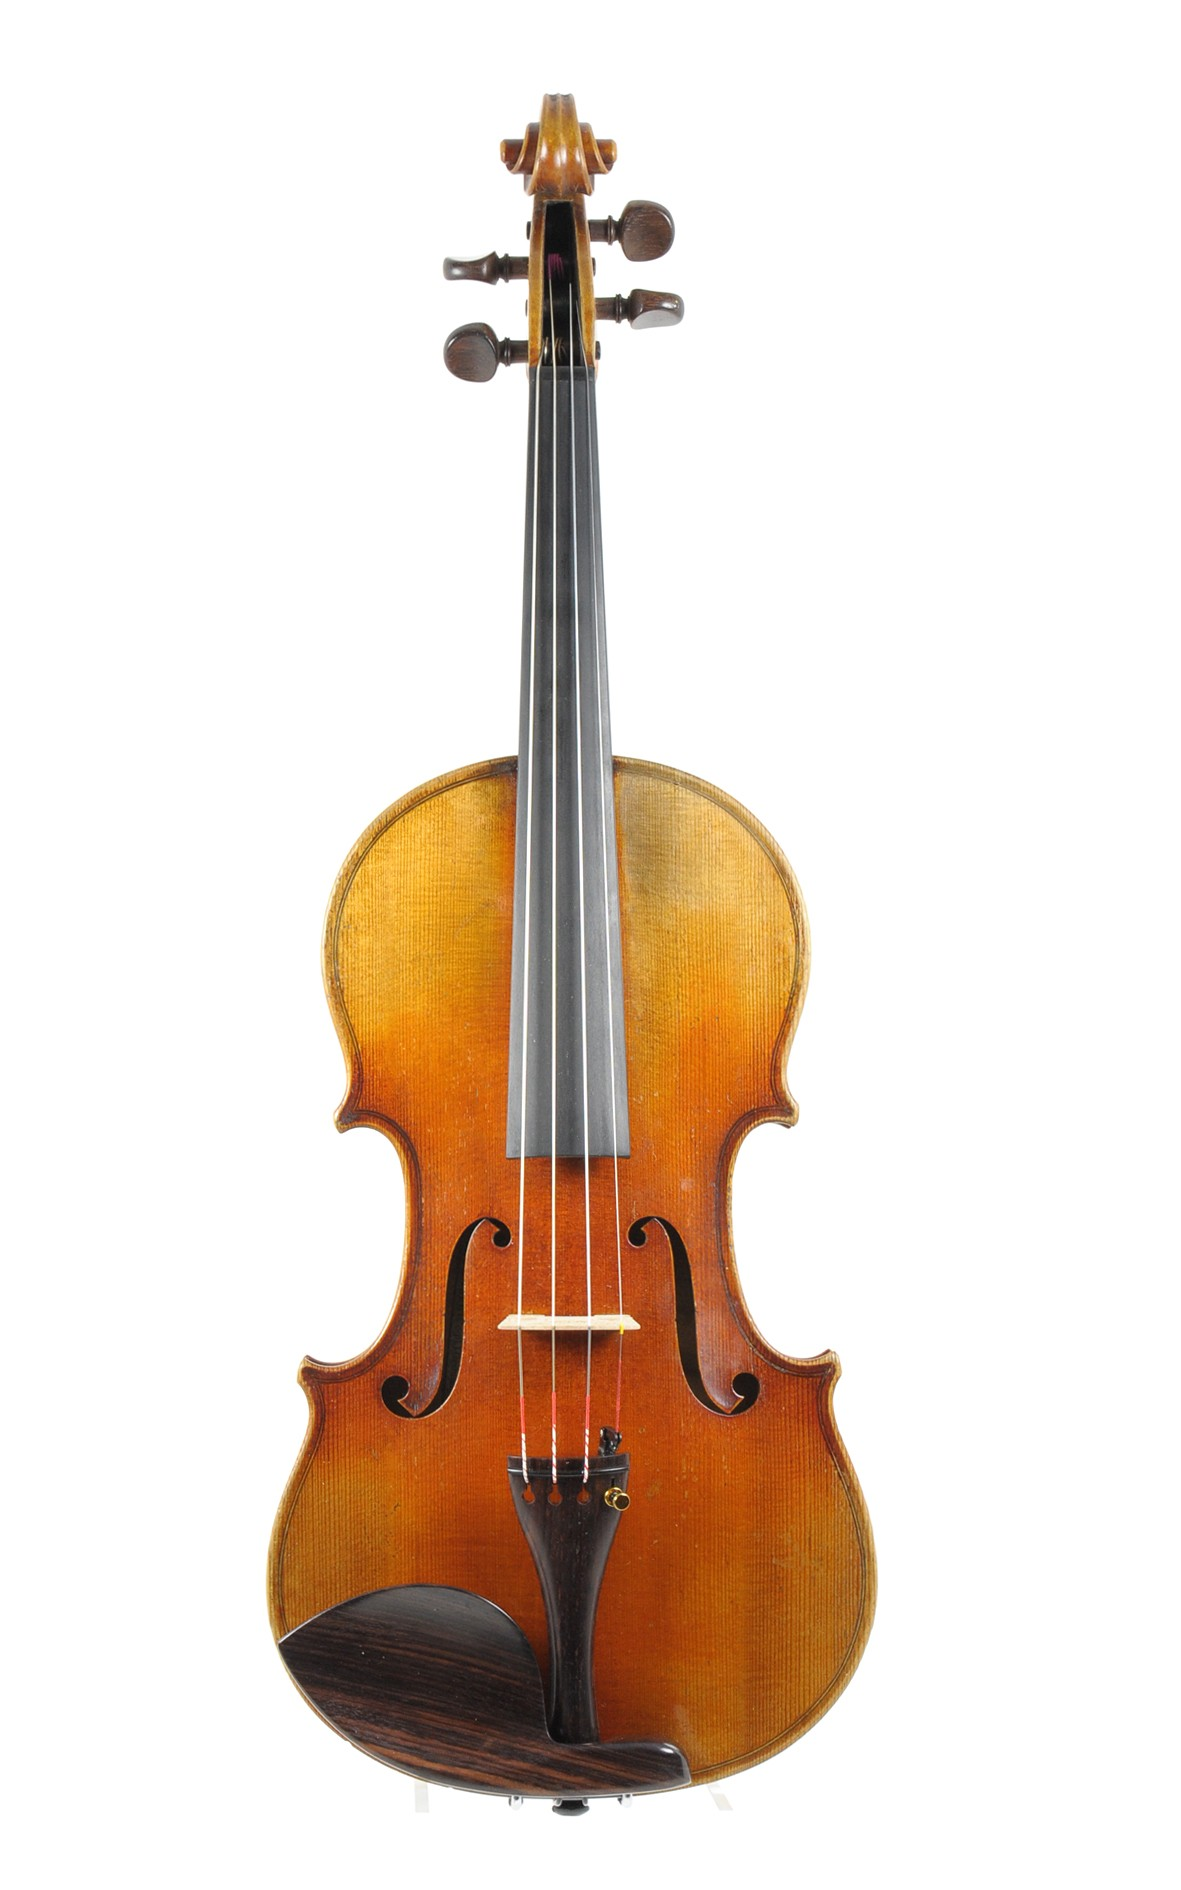 C. A. Wunderlich, anonymous master violin, 1920 approx. - top